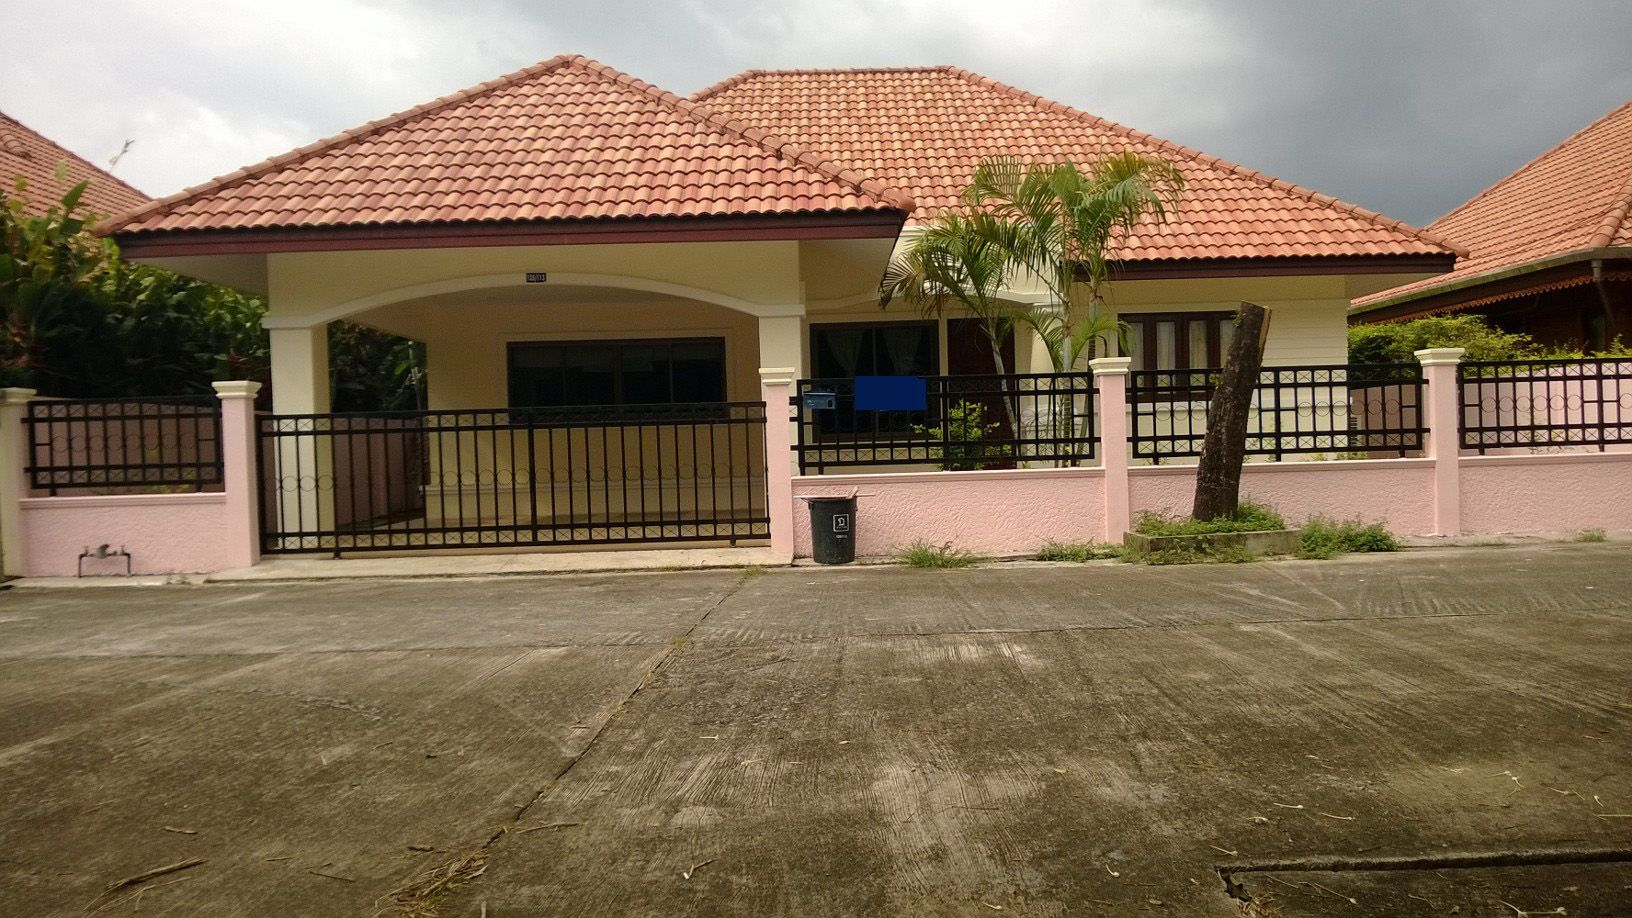 Nice Bungalow Houses In Uganda With Nicely Single House 3 Bedroom For Rent Near Chalong Circle Bungalow House Design Modern Bungalow House Townhouse For Rent